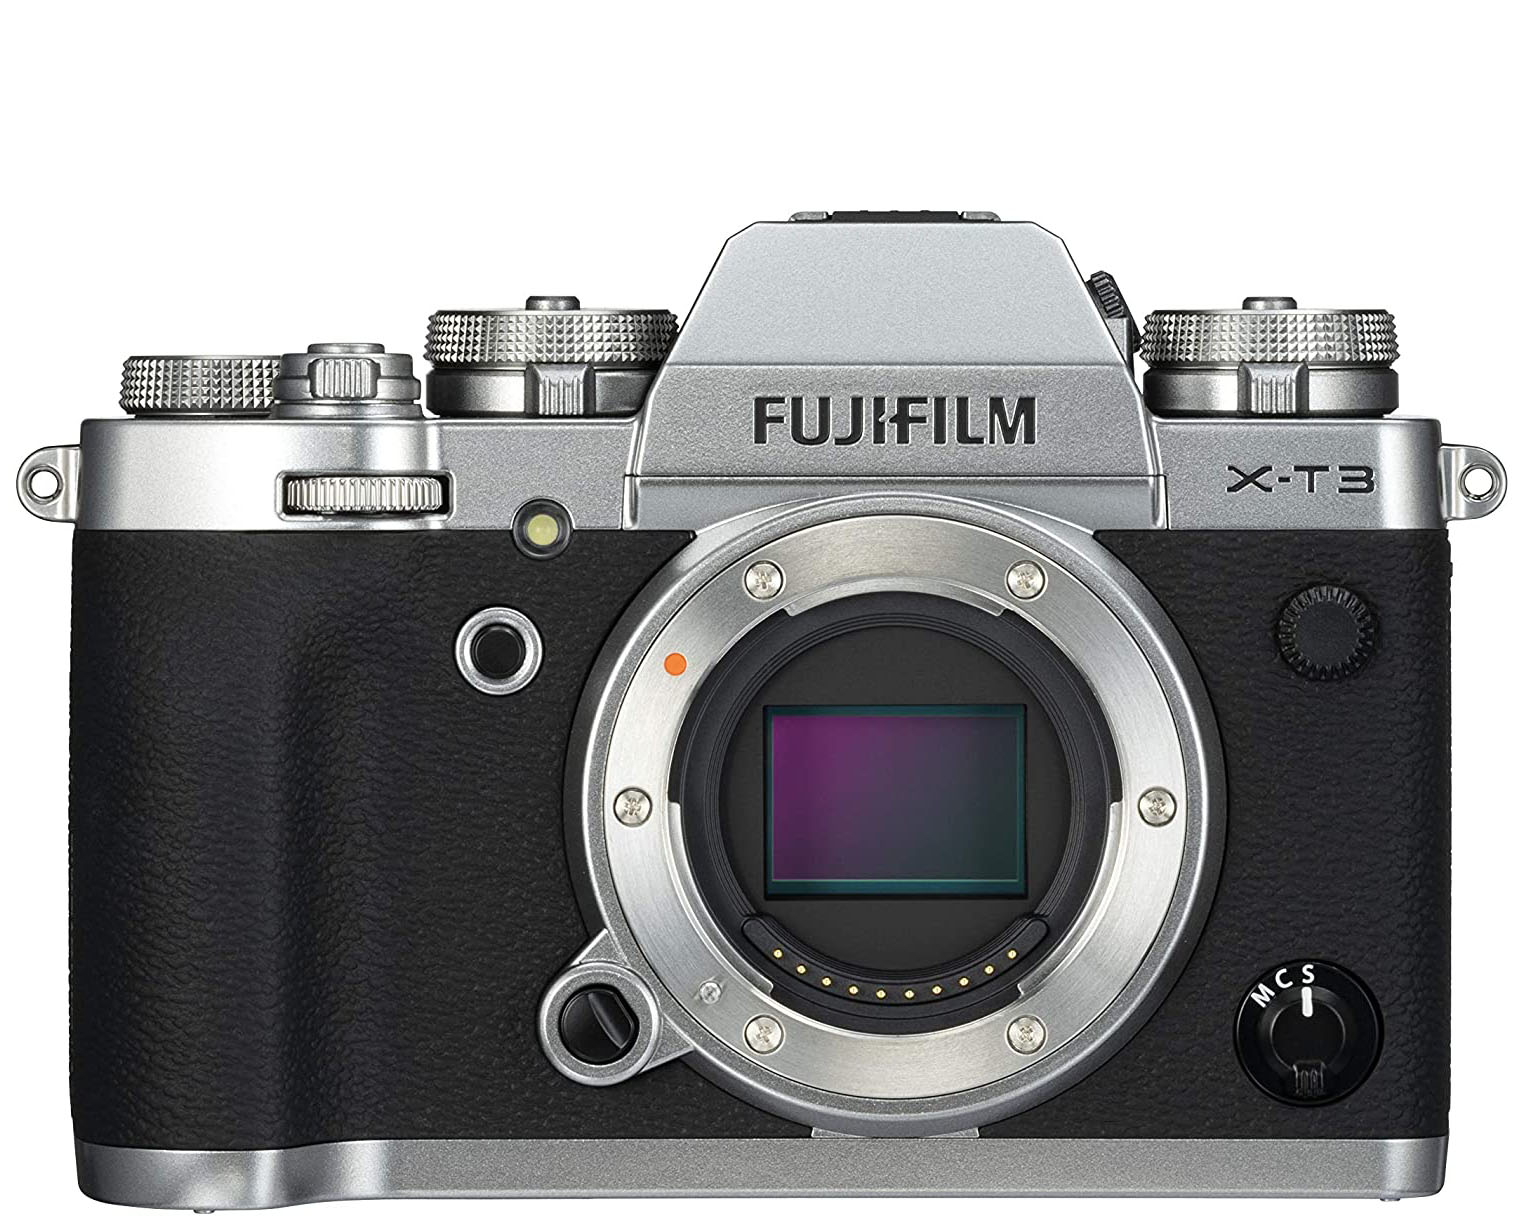 Fujifilm X-T3 base de datos